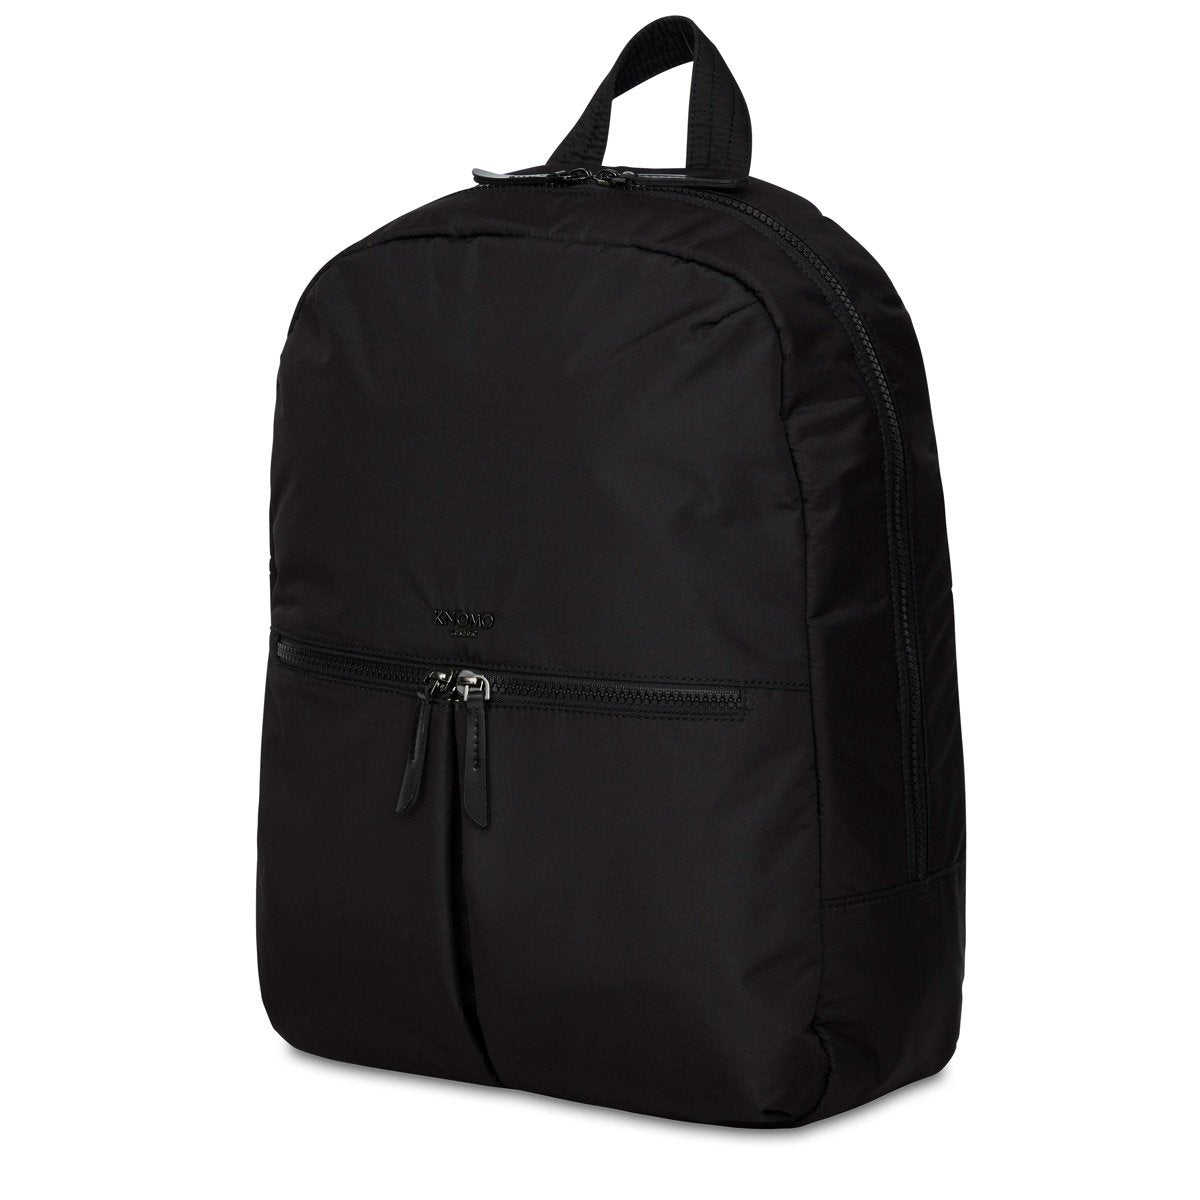 "KNOMO Berlin Laptop Backpack Three Quarter View 15"" -  Black 